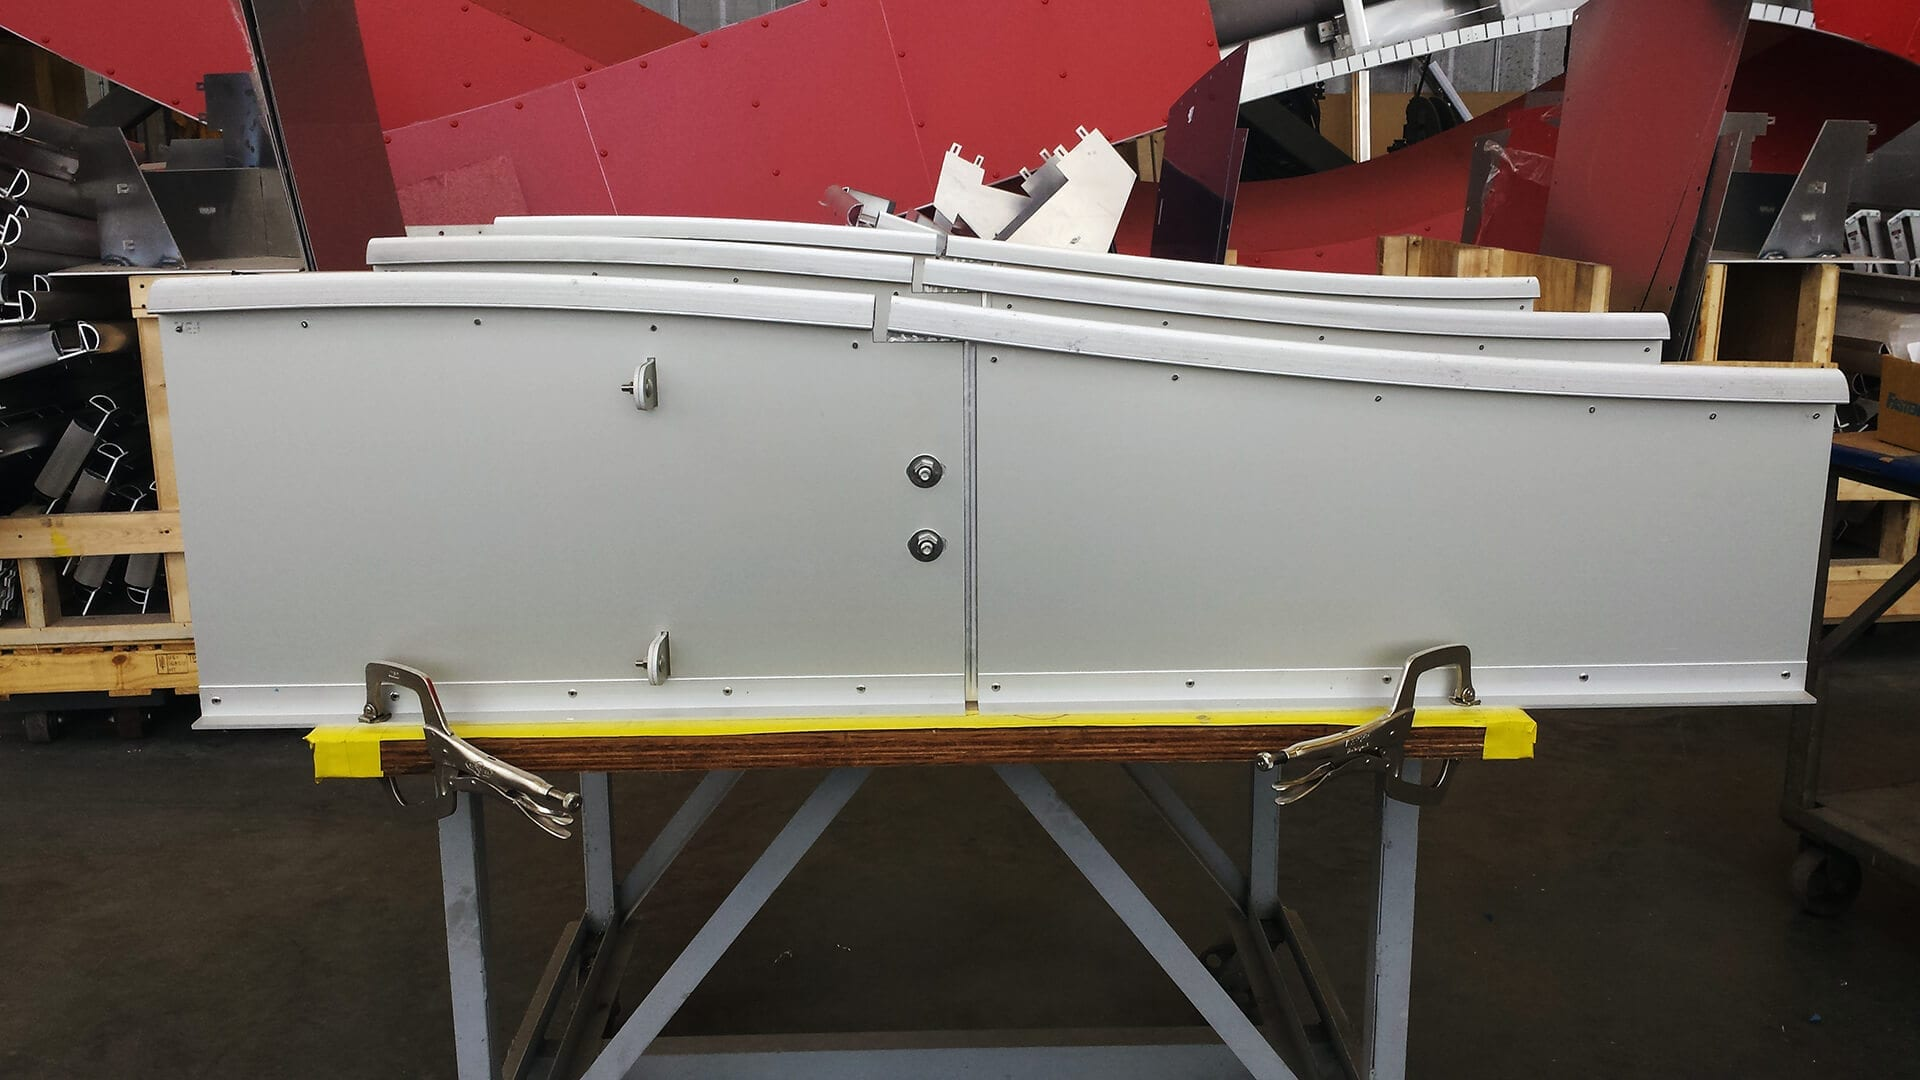 Mockup showing the connection between two vertical fins for Cedar Kettner.